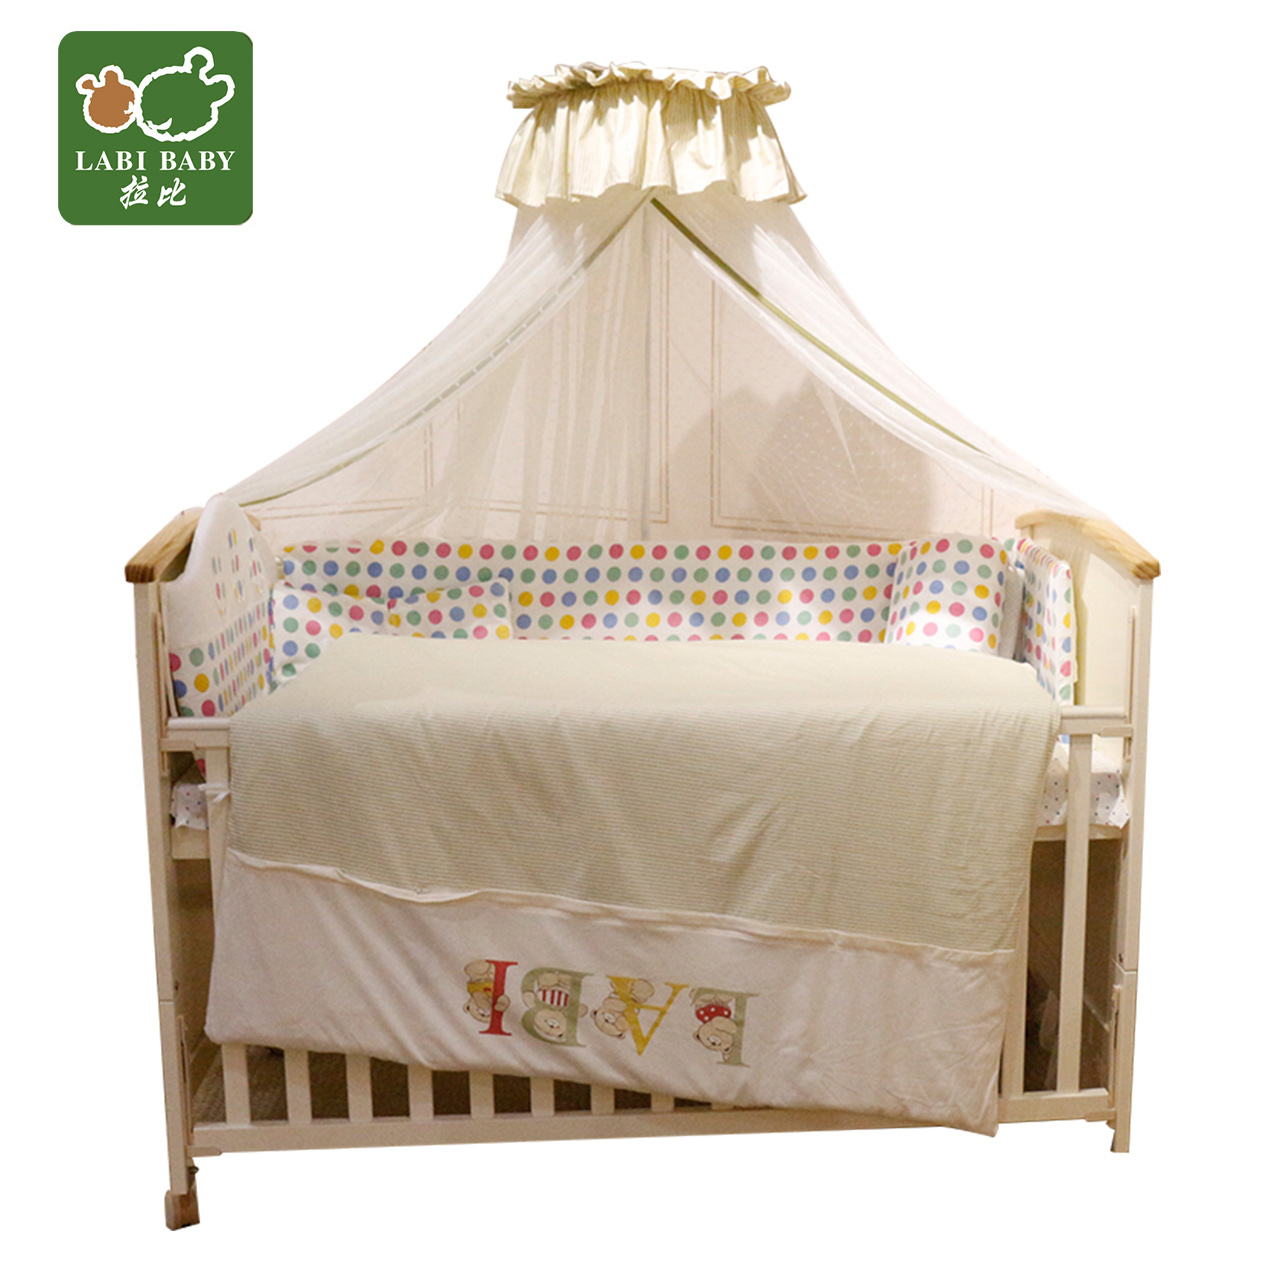 Rabbi rabbi newborn hercribon hercribon versatile game new zealand pine wood crib crib children